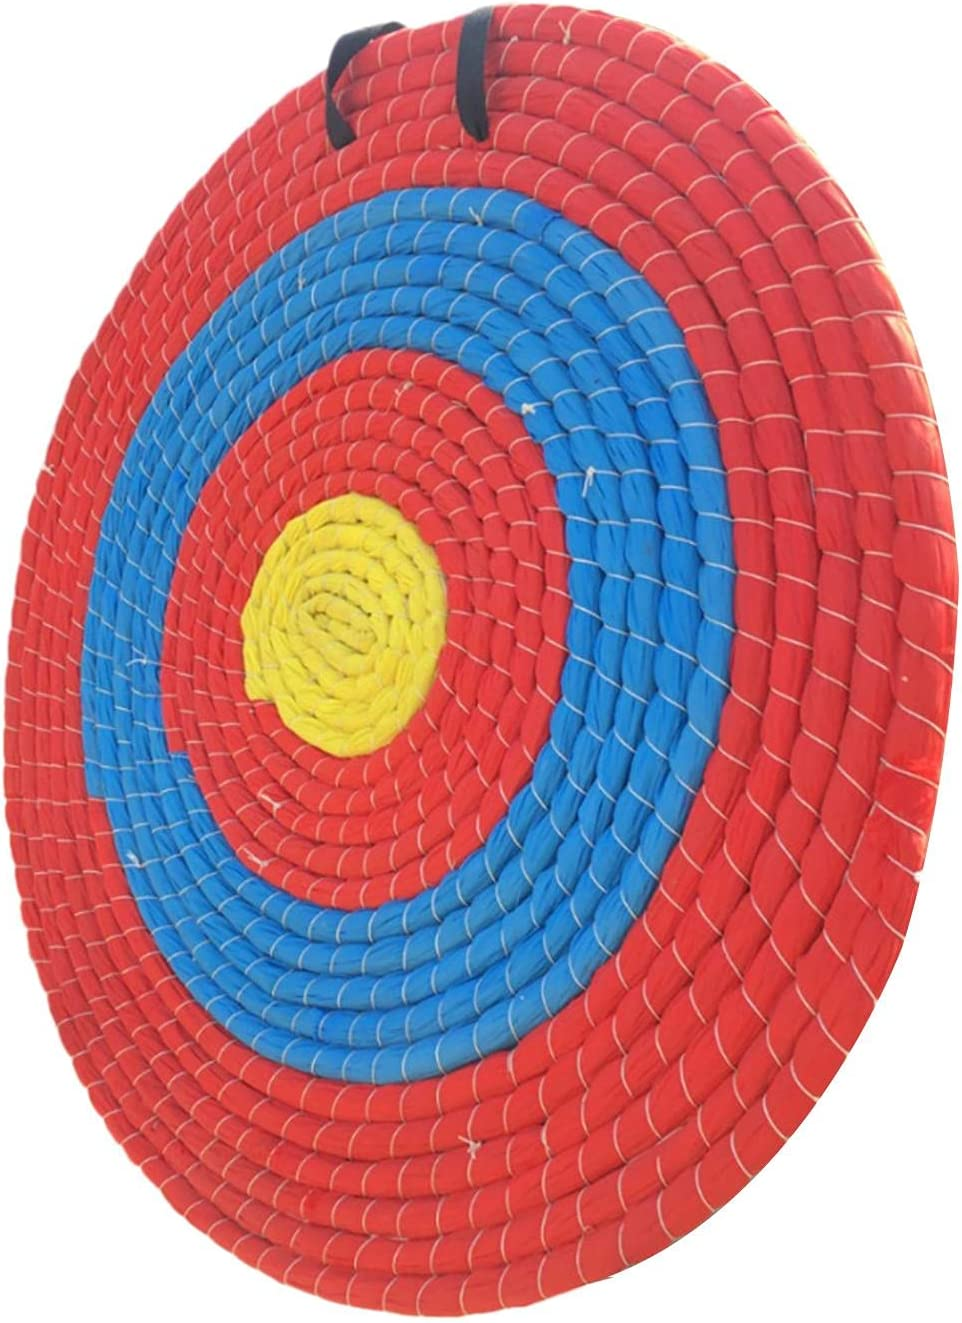 4-Ring Antique Grass Target Archery and 2021 Frame Max 71% OFF for